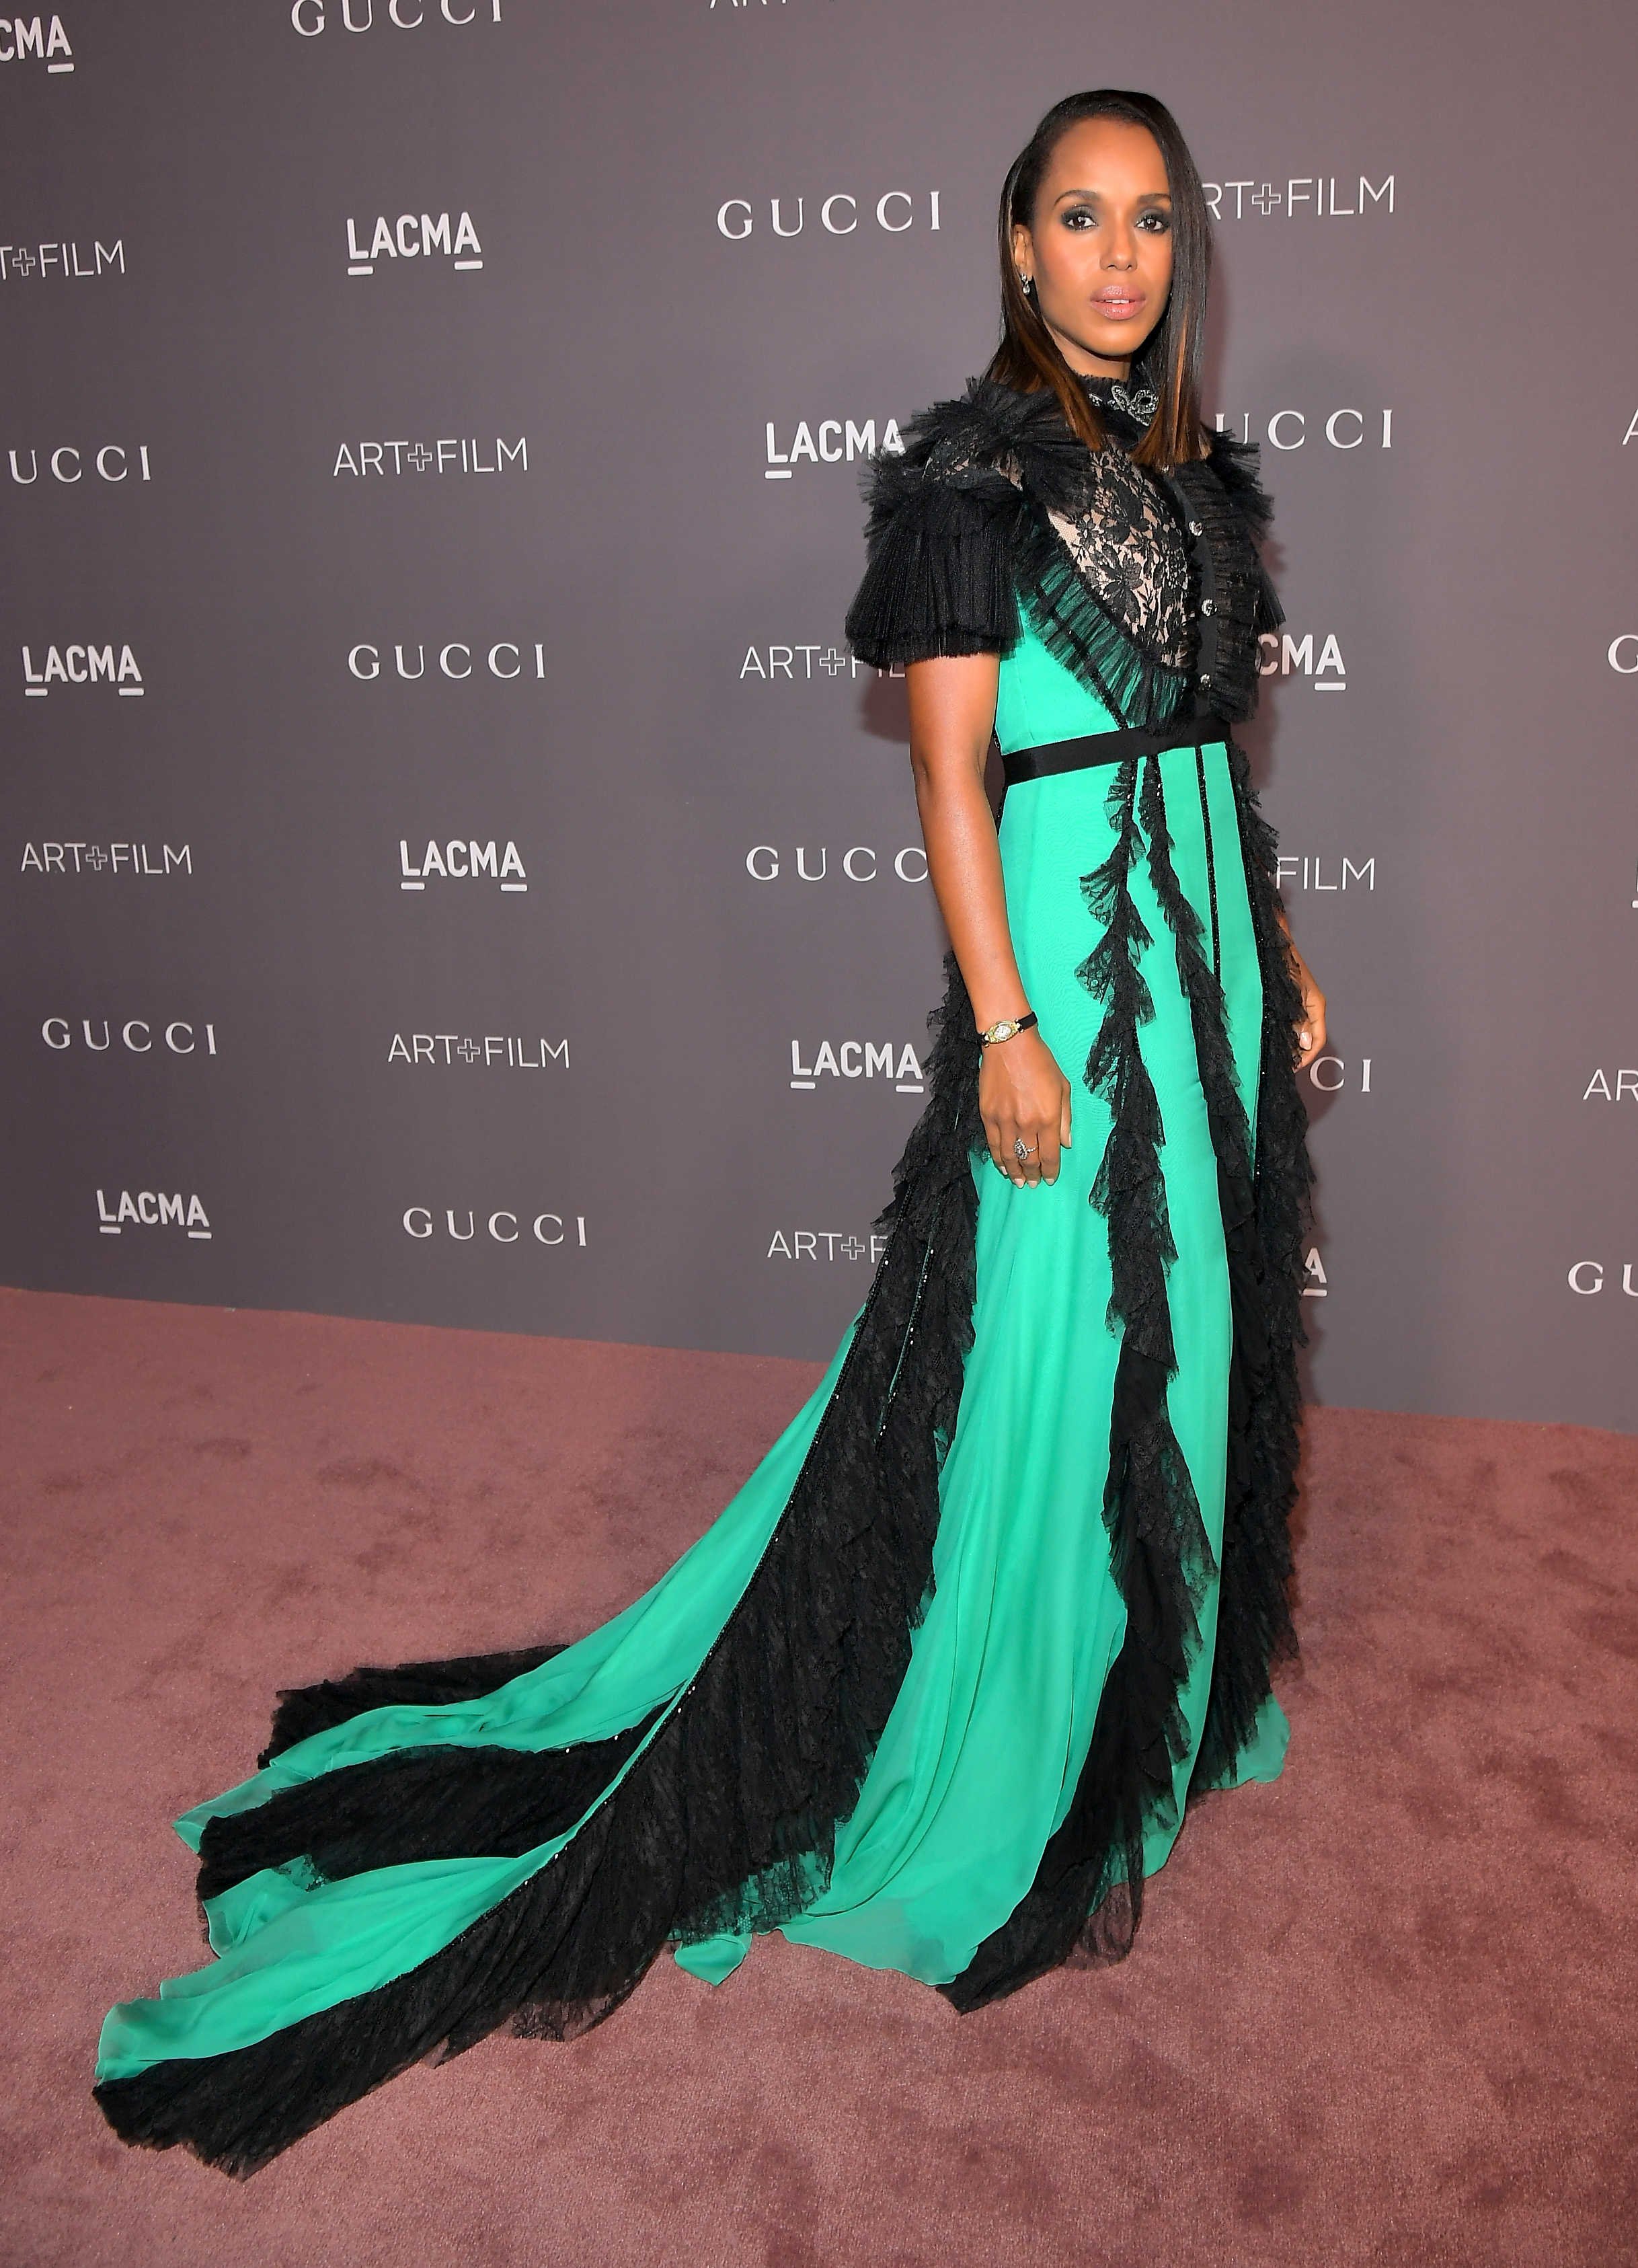 LOS ANGELES, CA - NOVEMBER 04: Actor Kerry Washington, wearing Gucci, attends the 2017 LACMA Art + Film Gala Honoring Mark Bradford and George Lucas presented by Gucci at LACMA on November 4, 2017 in Los Angeles, California. (Photo by Charley Gallay/Getty Images for LACMA)